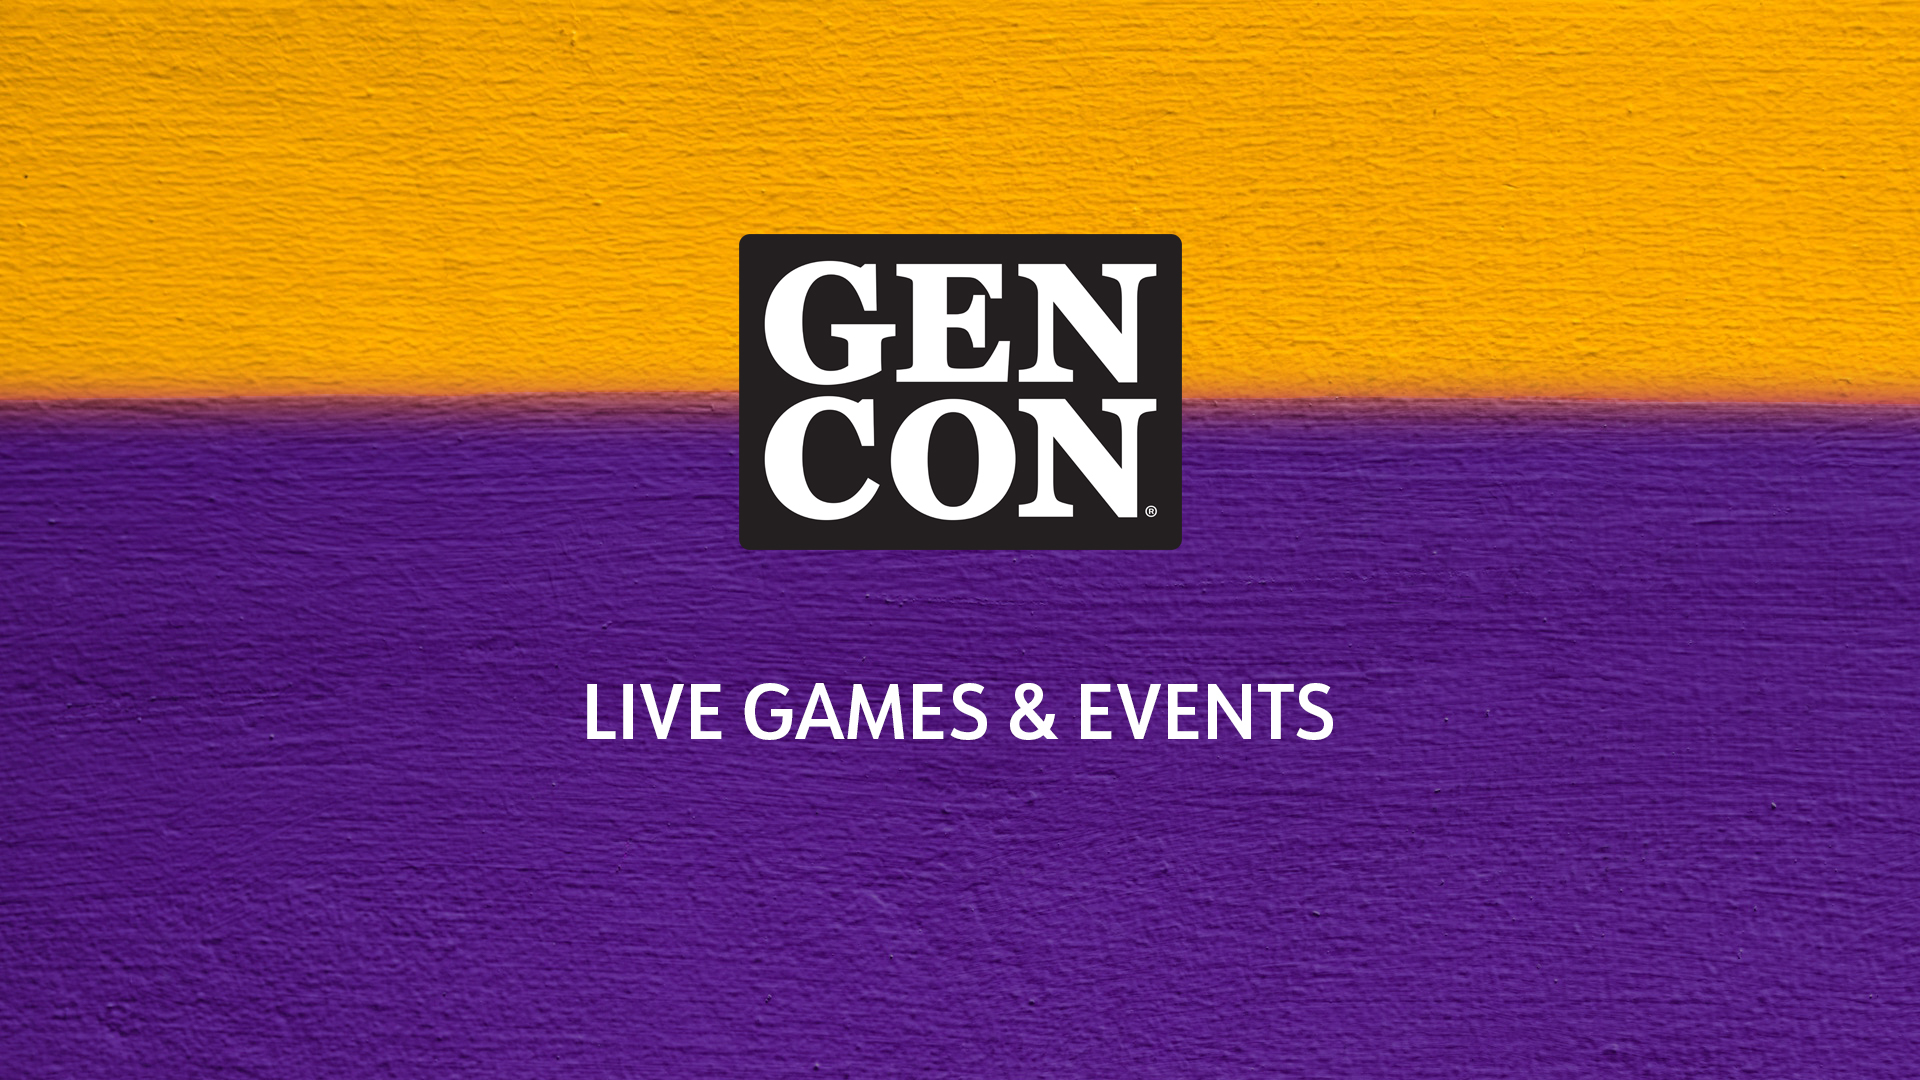 Gen Con Live Games & Events